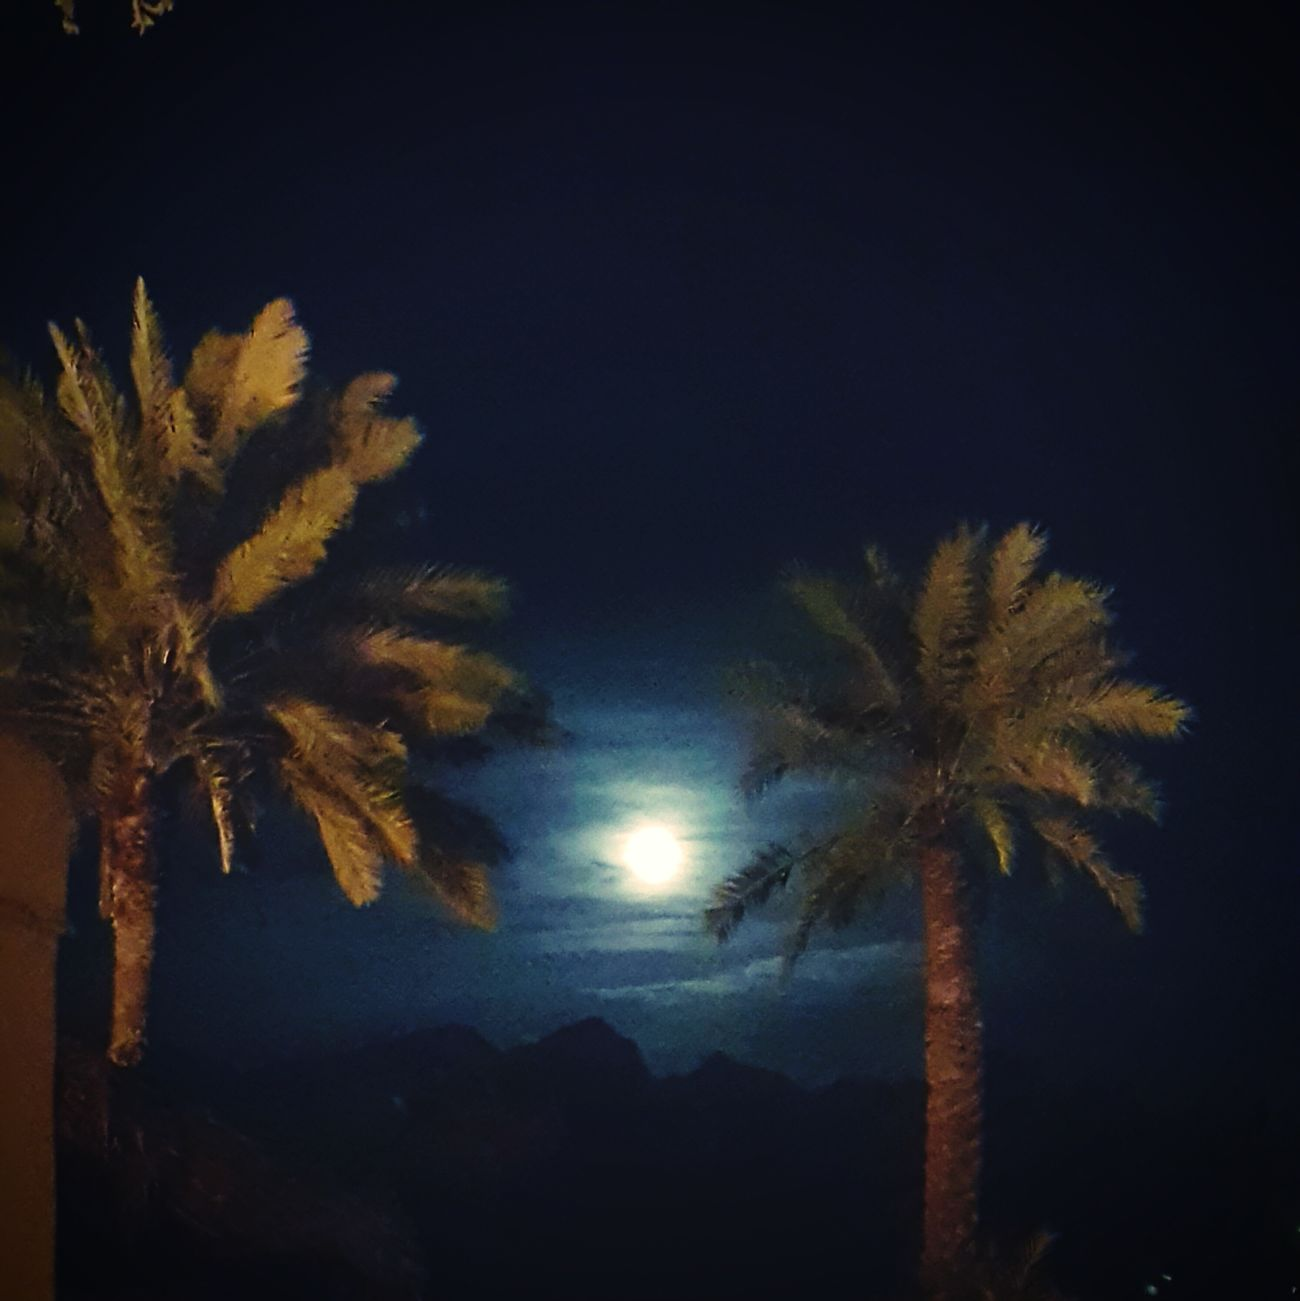 Night Palmtree Dubai Hatta Dubai Moon Moonlight Moon Light The Moon Beautiful Moon  Moonshine